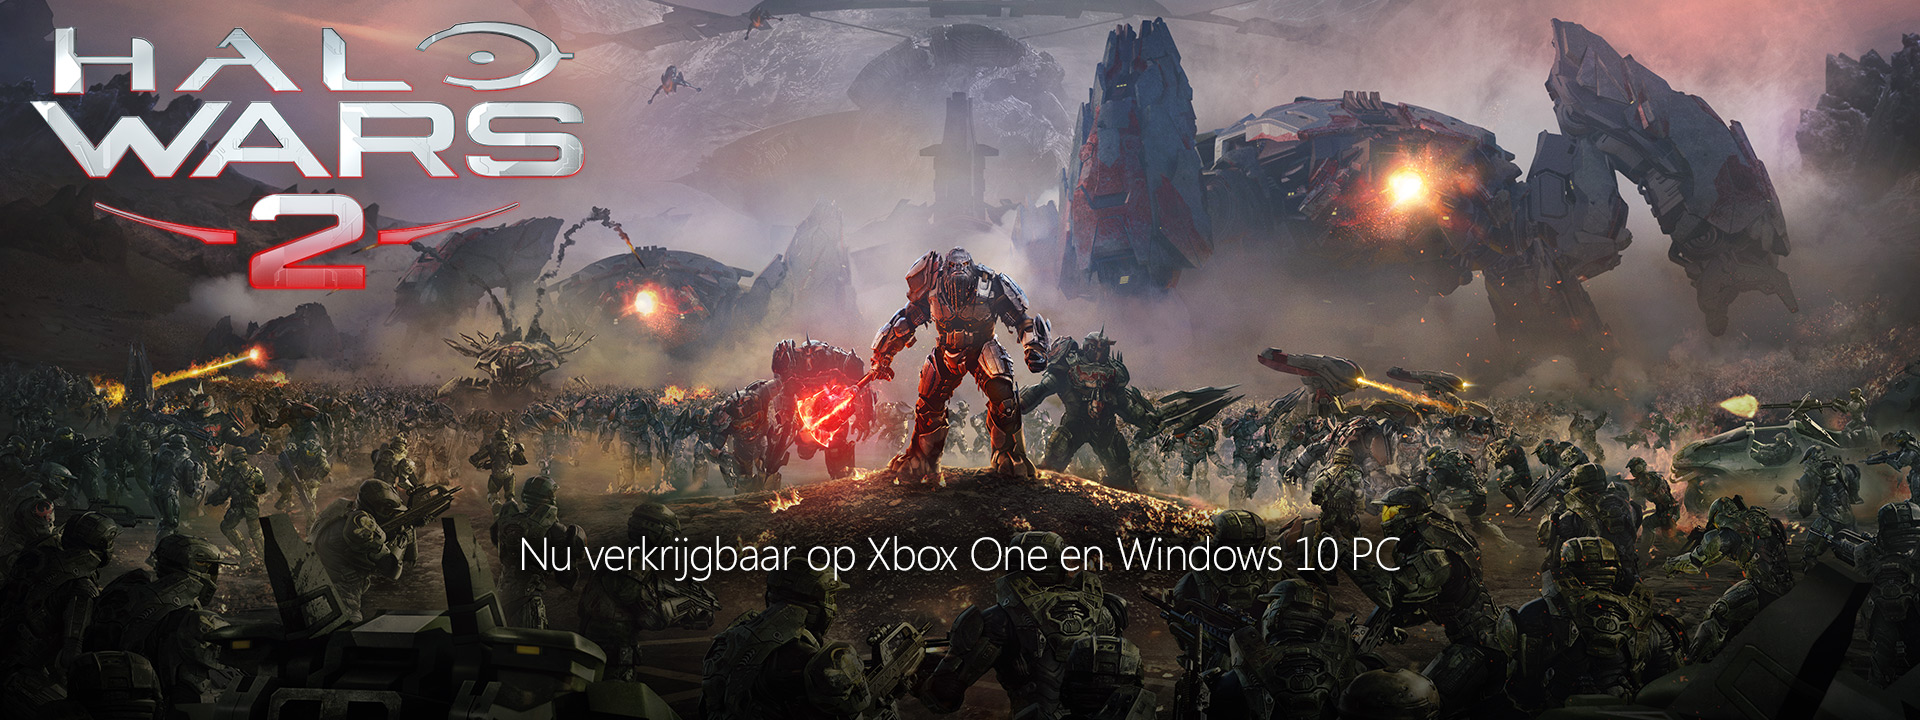 Windows 10 games